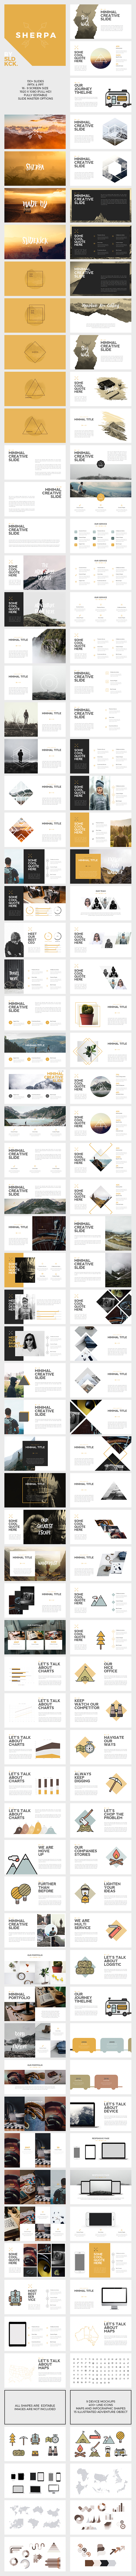 SHERPA - Hipster Powerpoint Presentation - PowerPoint Templates Presentation Templates